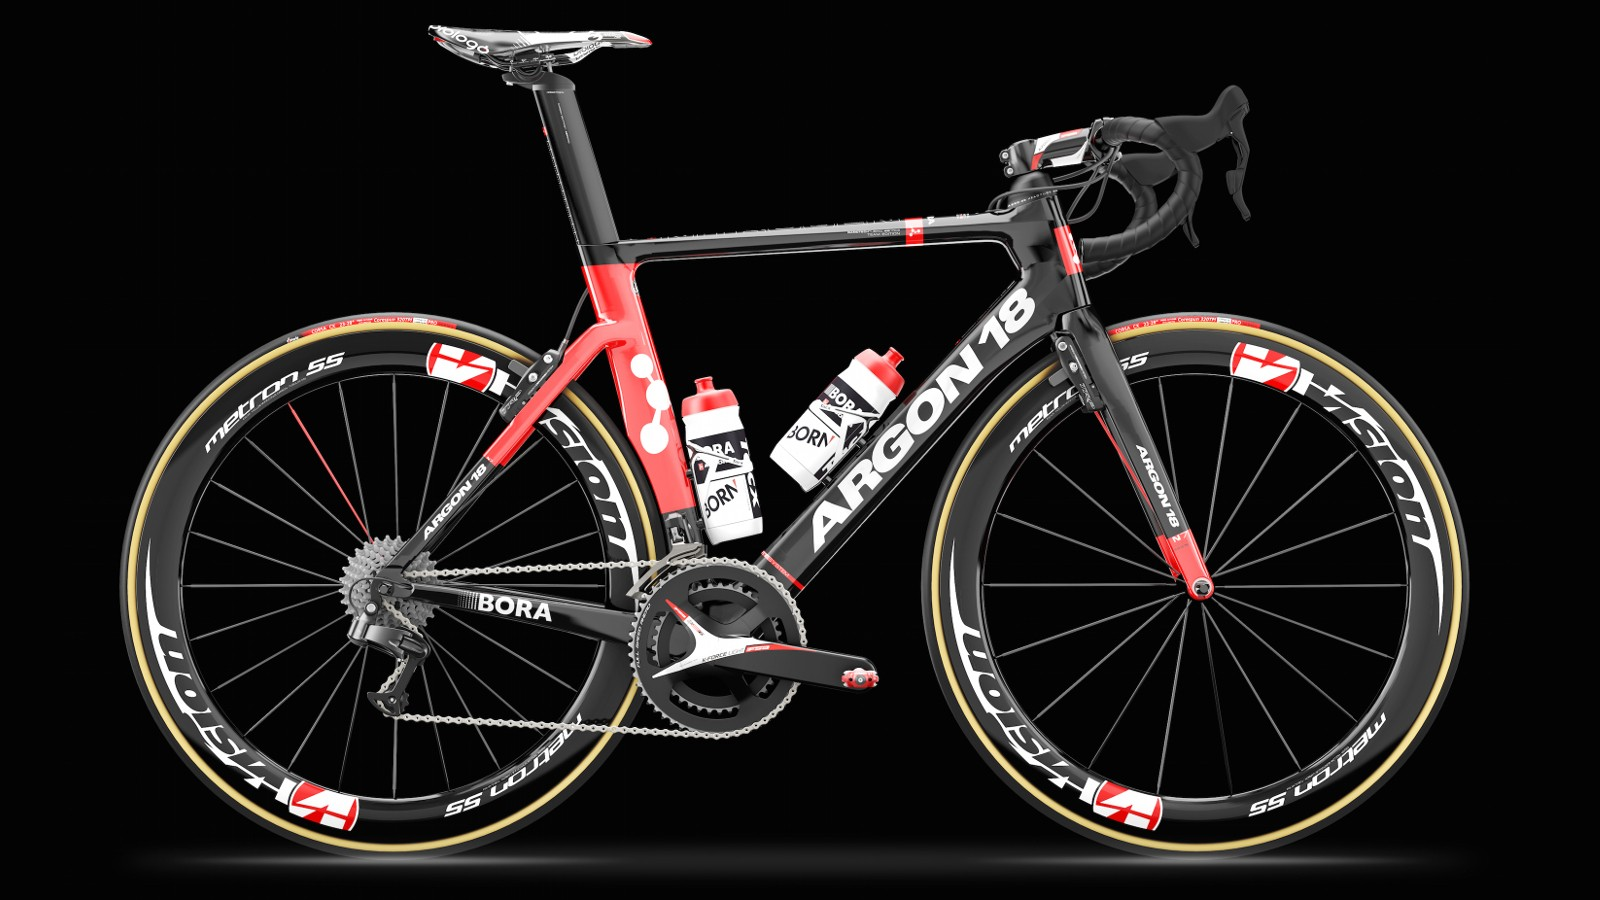 The Nitrogen is a really exciting new aero road bike with a light frame and nice detailing